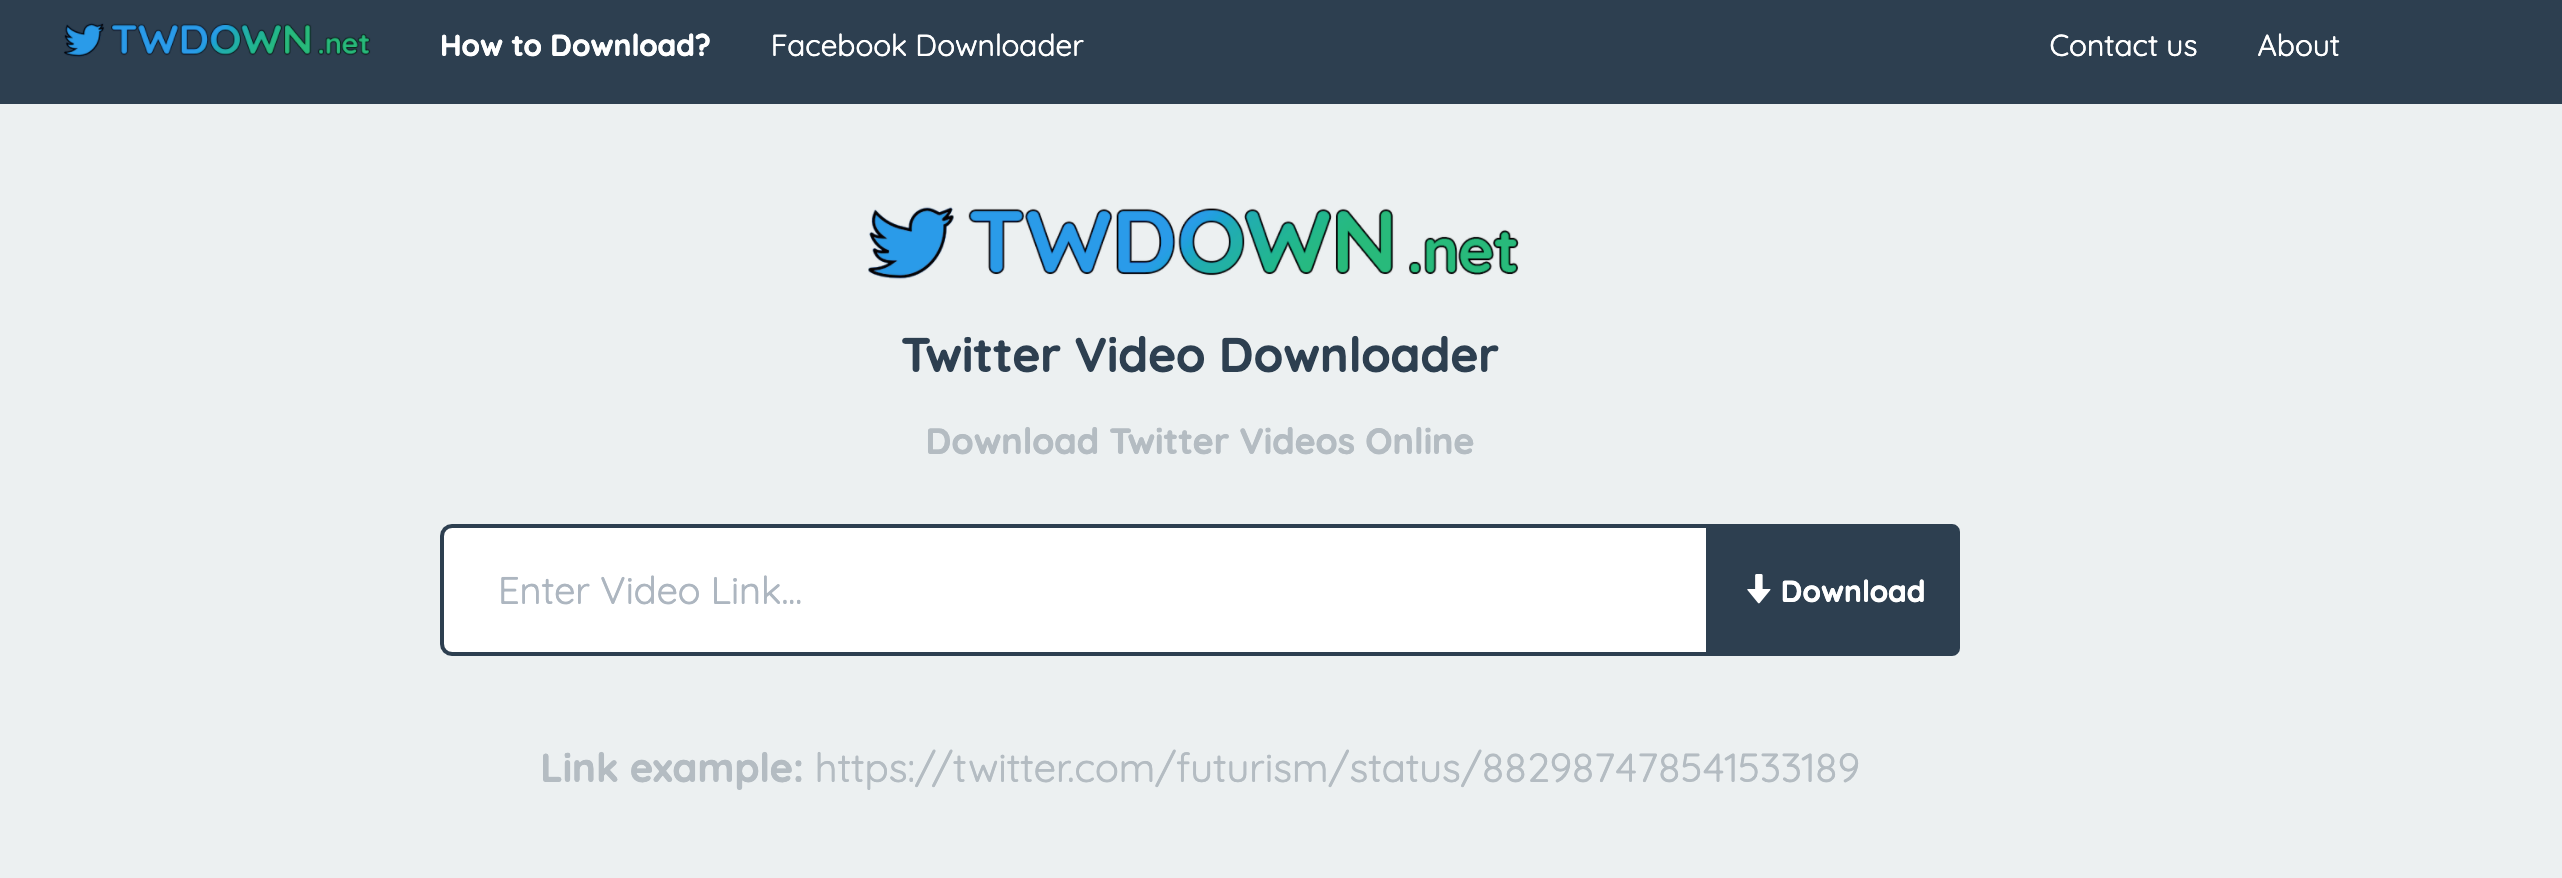 record-Twitter-audio-with-TWDOWN-01